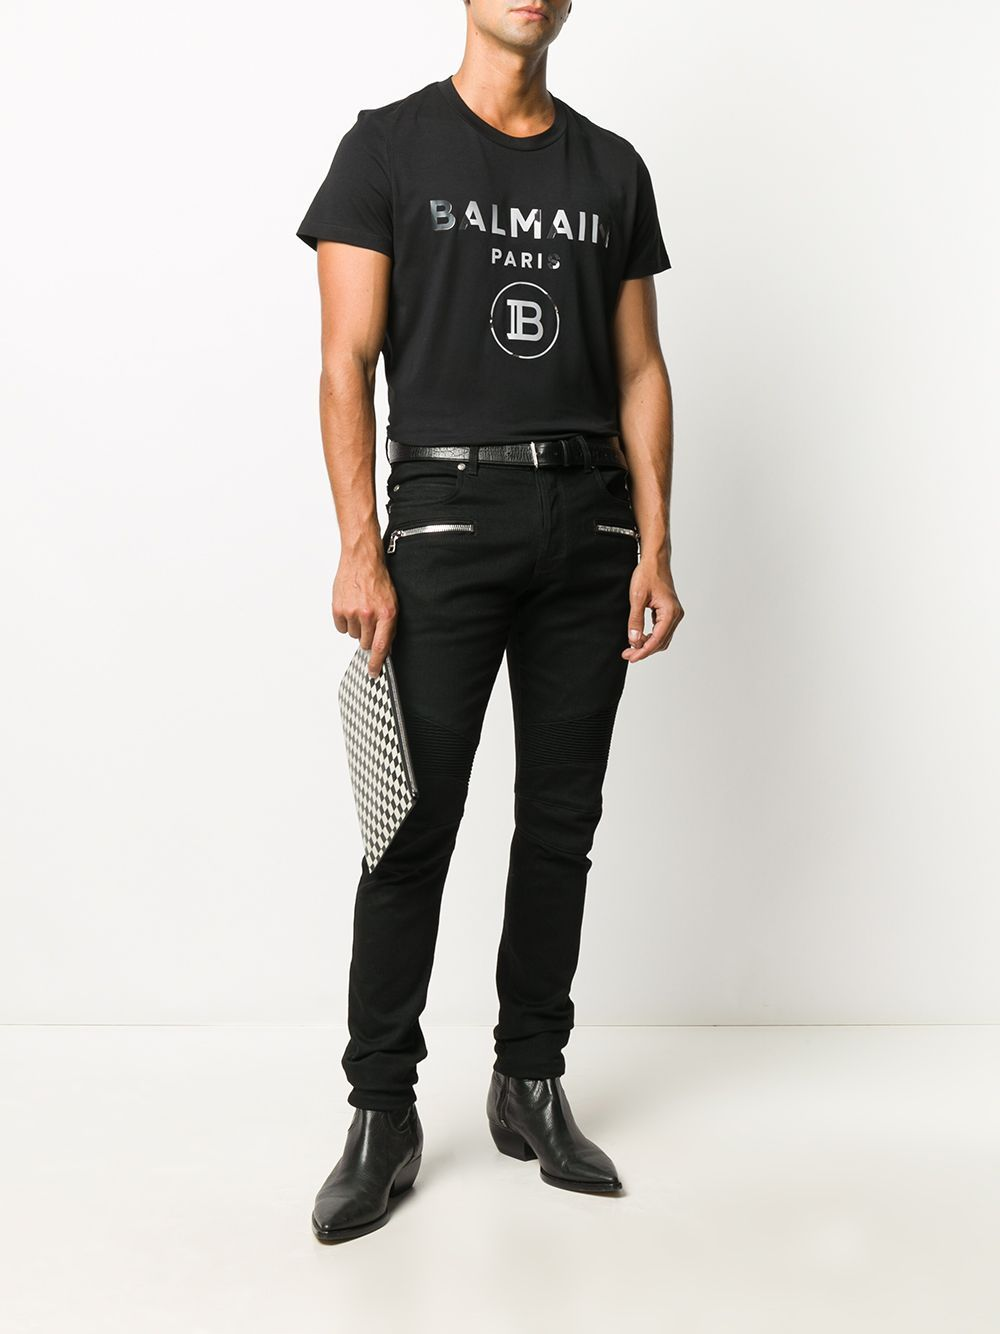 BALMAIN Mirrored Logo T-Shirt Black